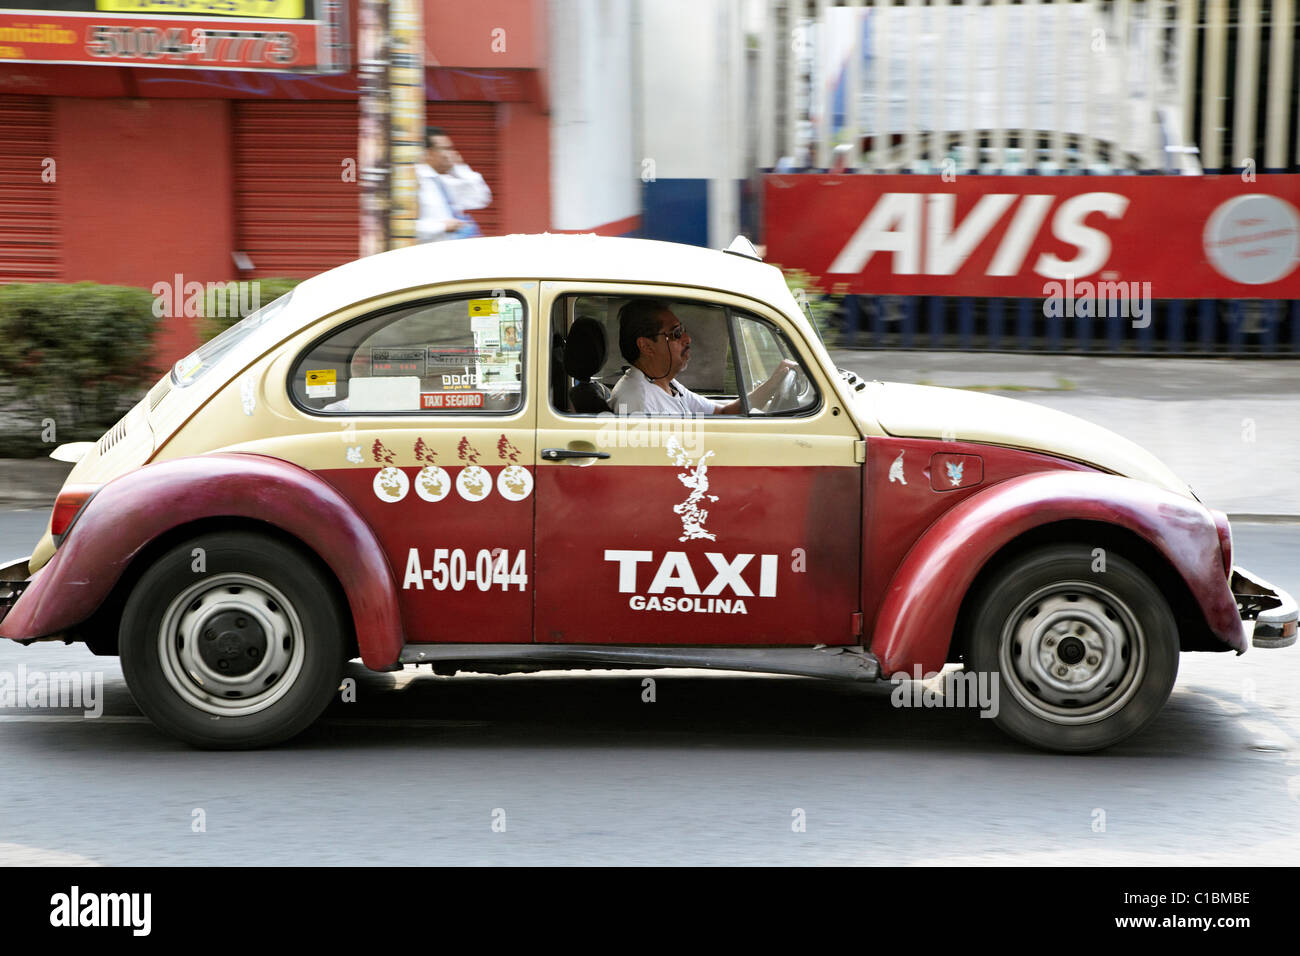 VW Beetle Taxi Mexico City Mexico - Stock Image